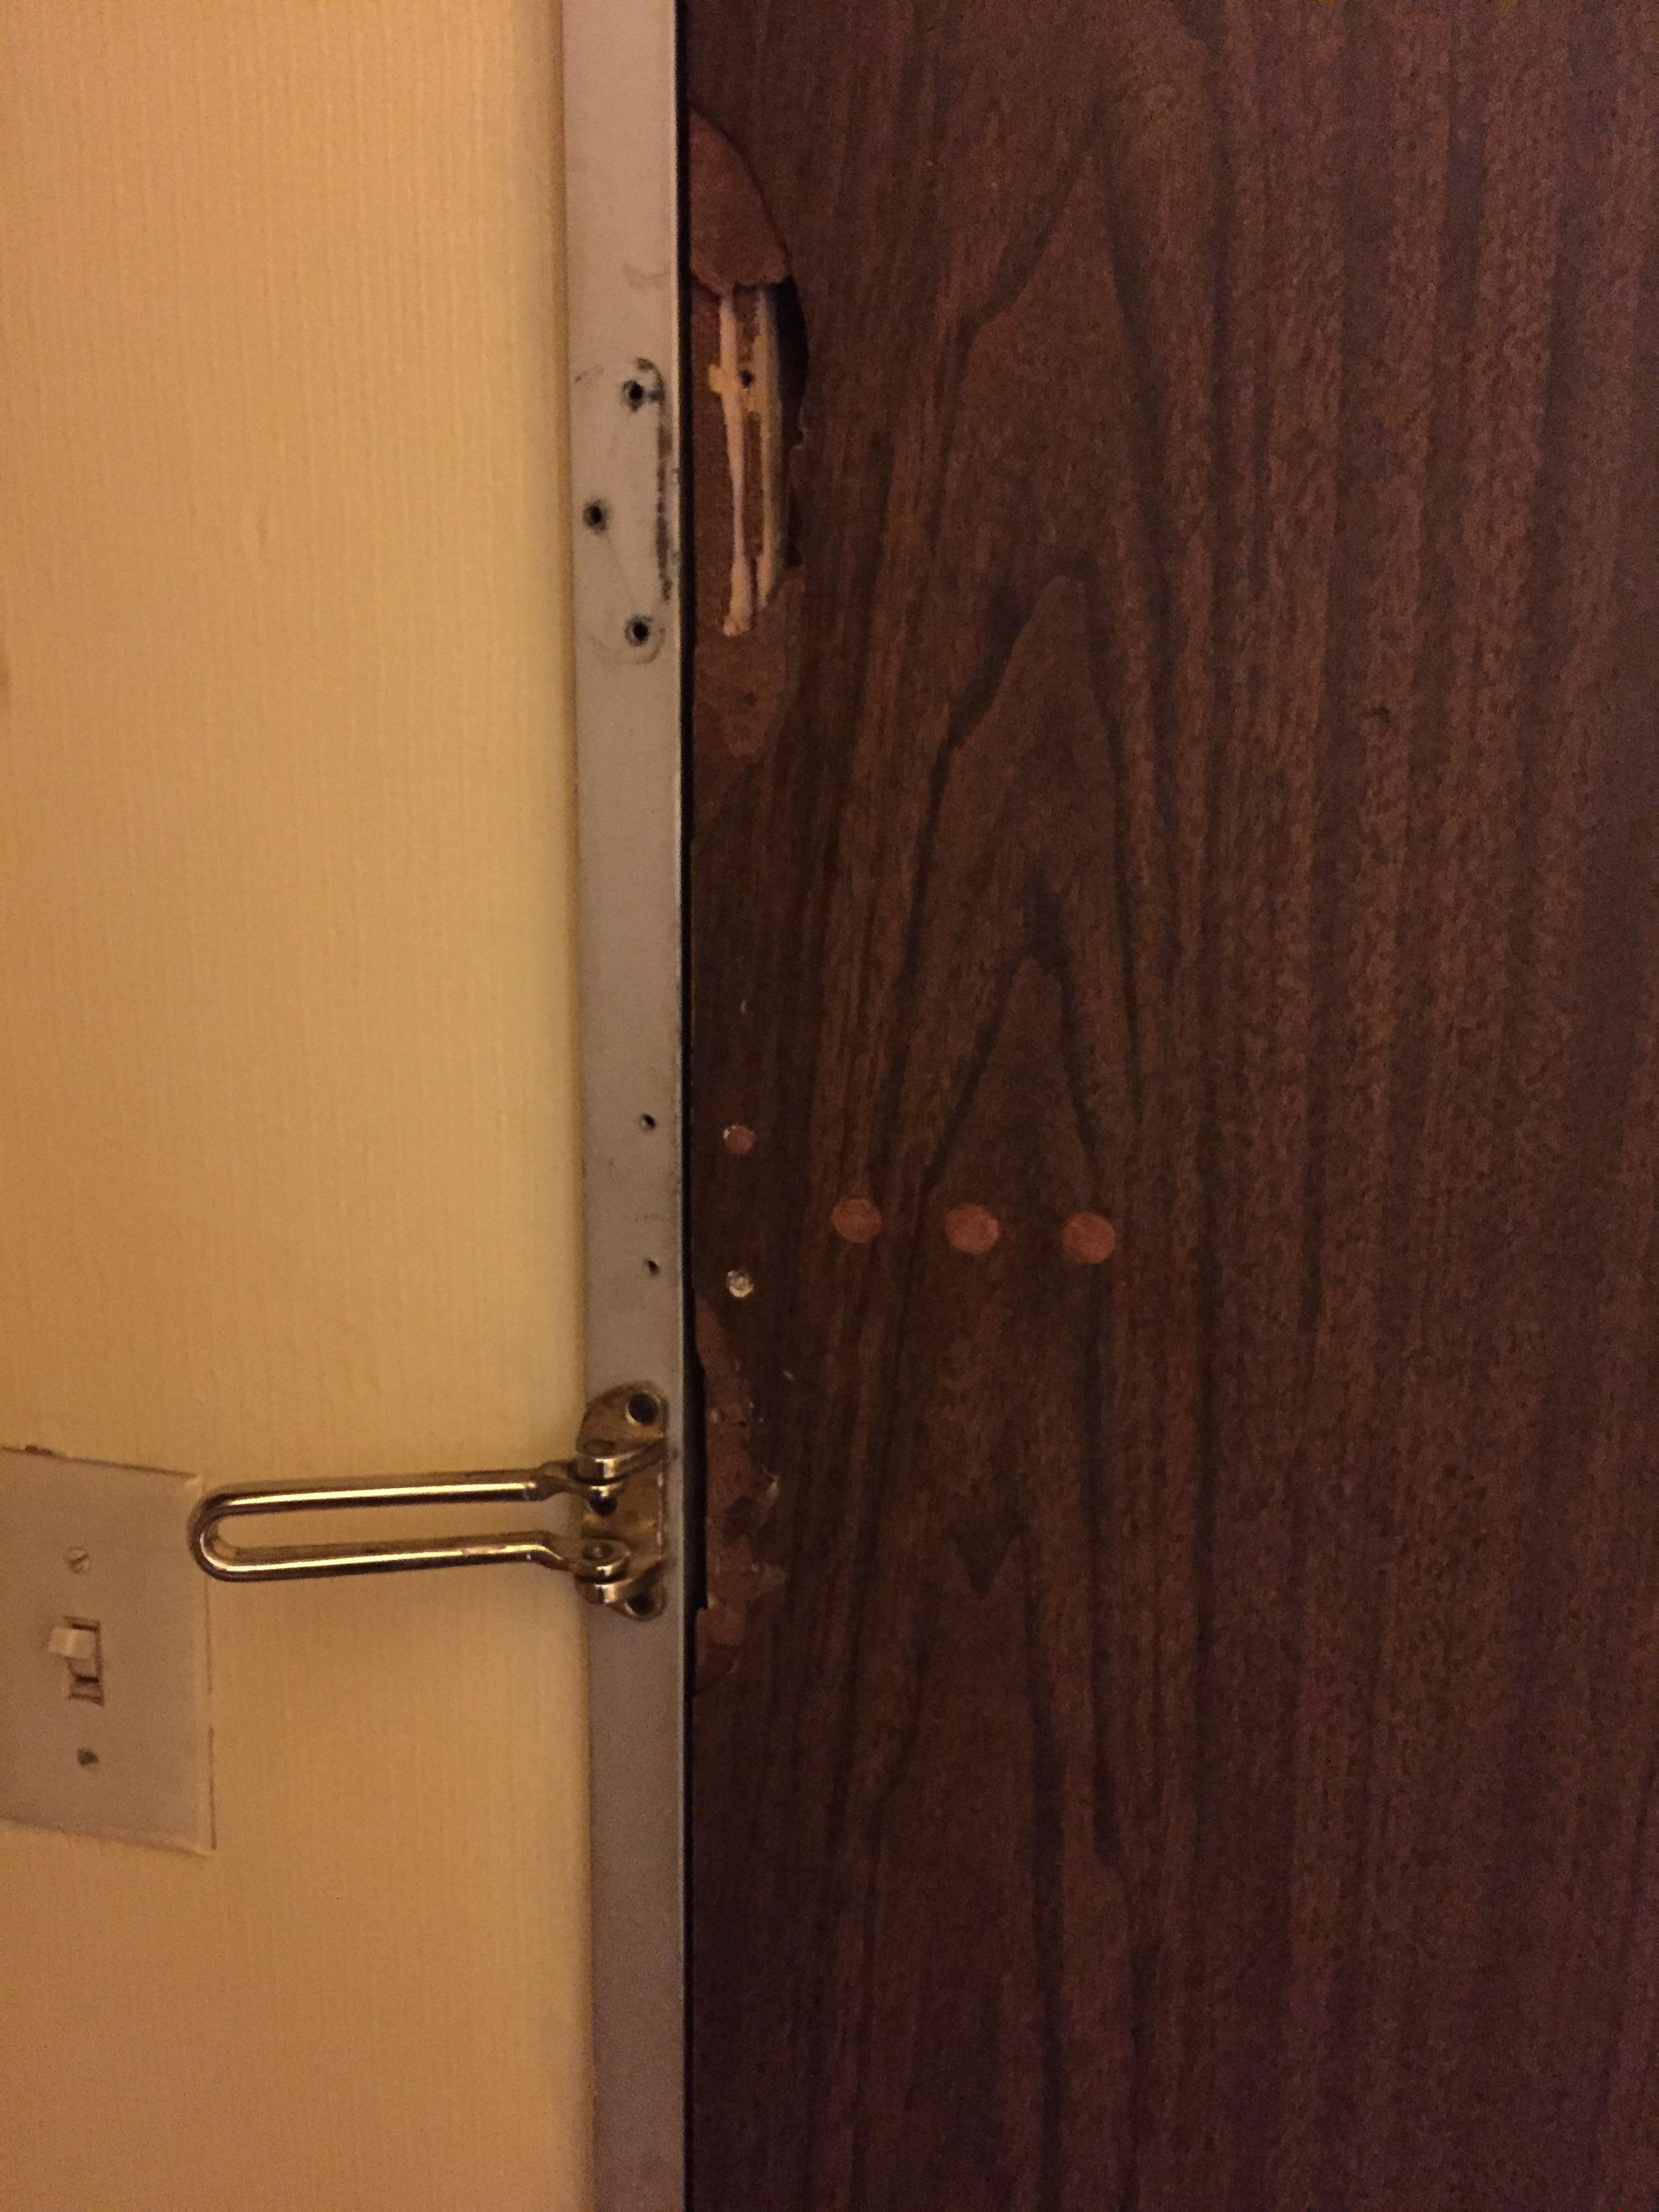 Bathroom door split